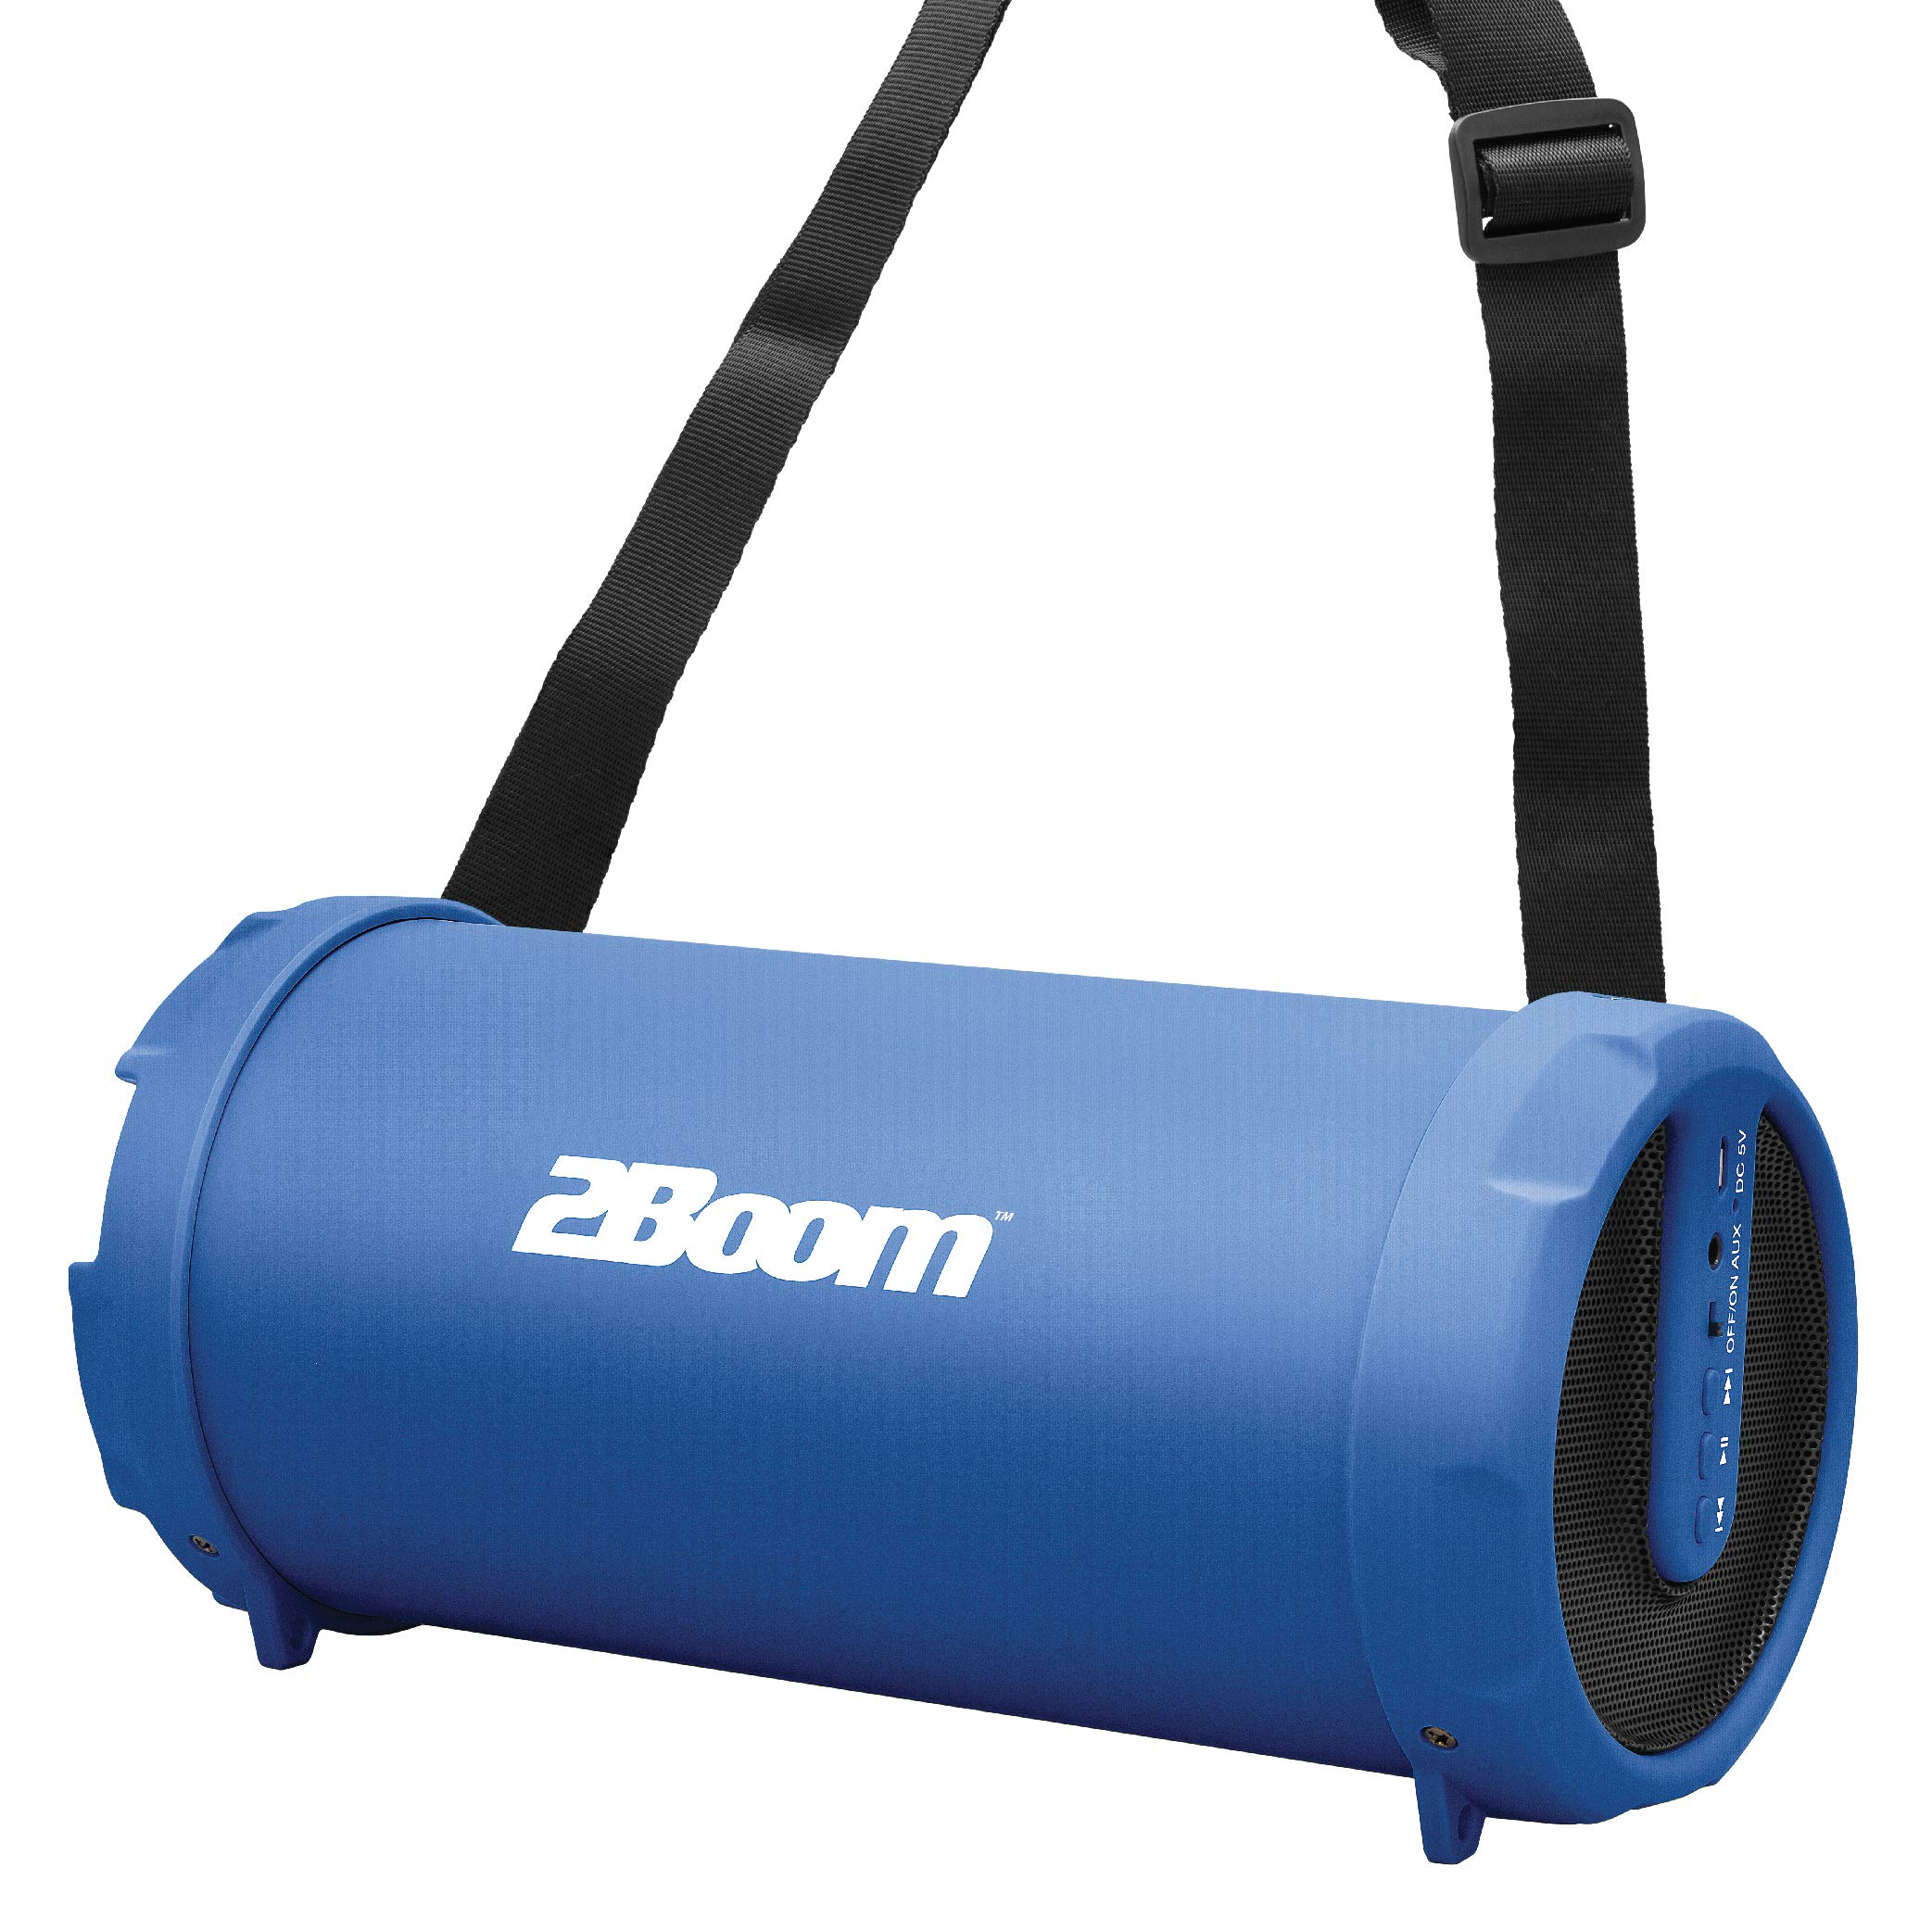 2BOOM Mini Bass King Wireless Bluetooth Portable Outdoor Speaker with FM  Radio LED Display - Blue